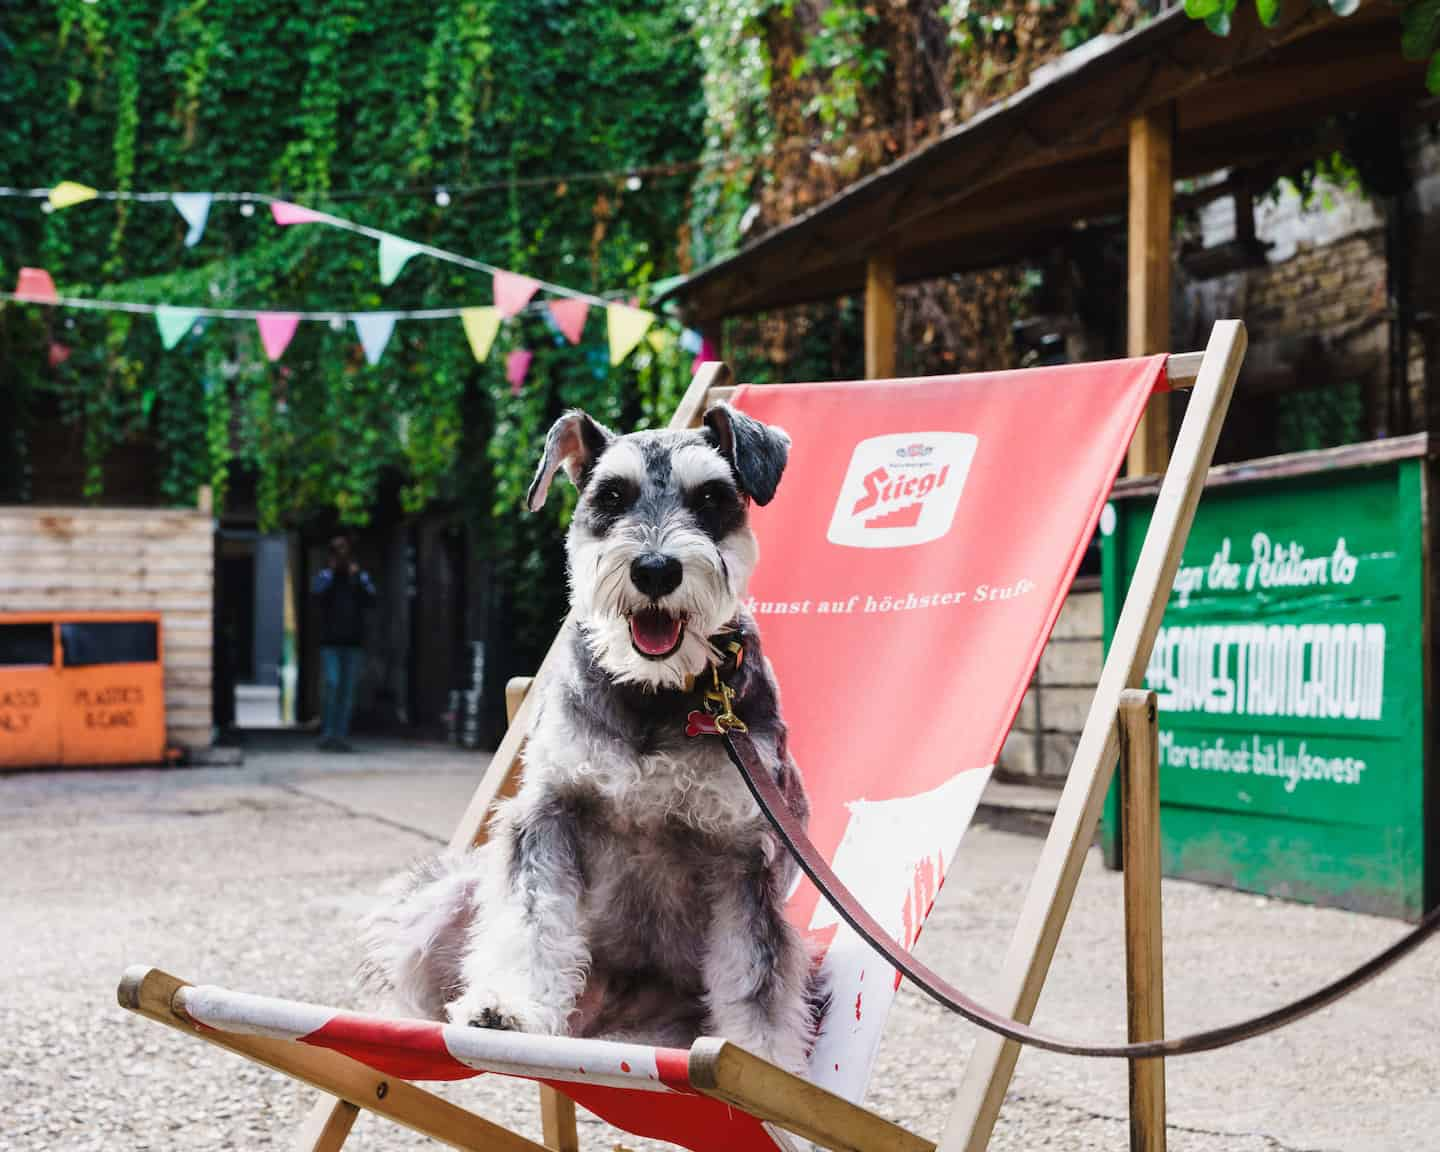 My Dog Friendly London By Rusty Red The Schnauzer | Dog Friendly Shoreditch and Hoxton Strongroom Bar & Kitchen 1